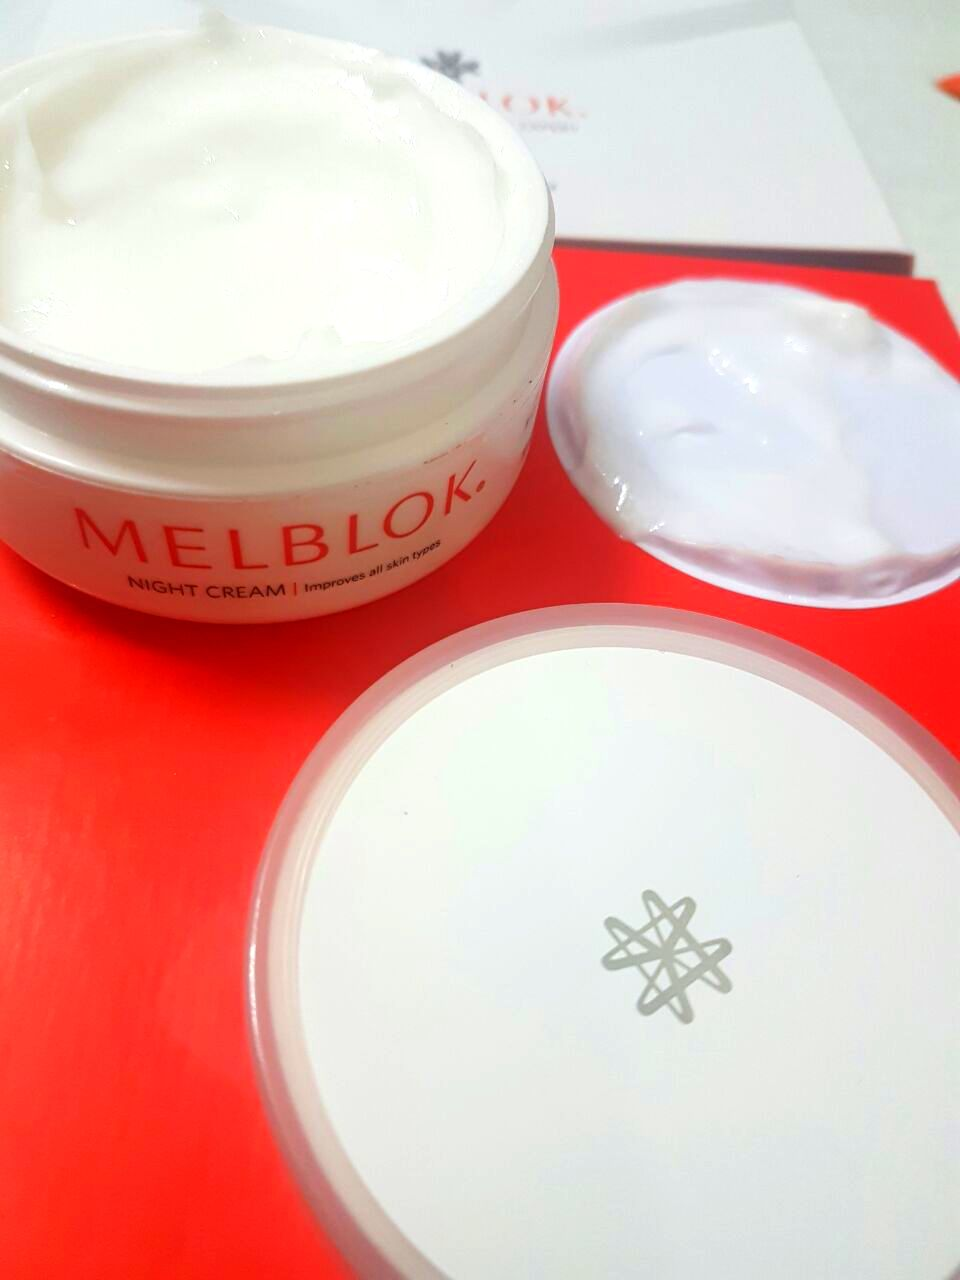 melblok-advance-home-kit-and-pure-face-wash